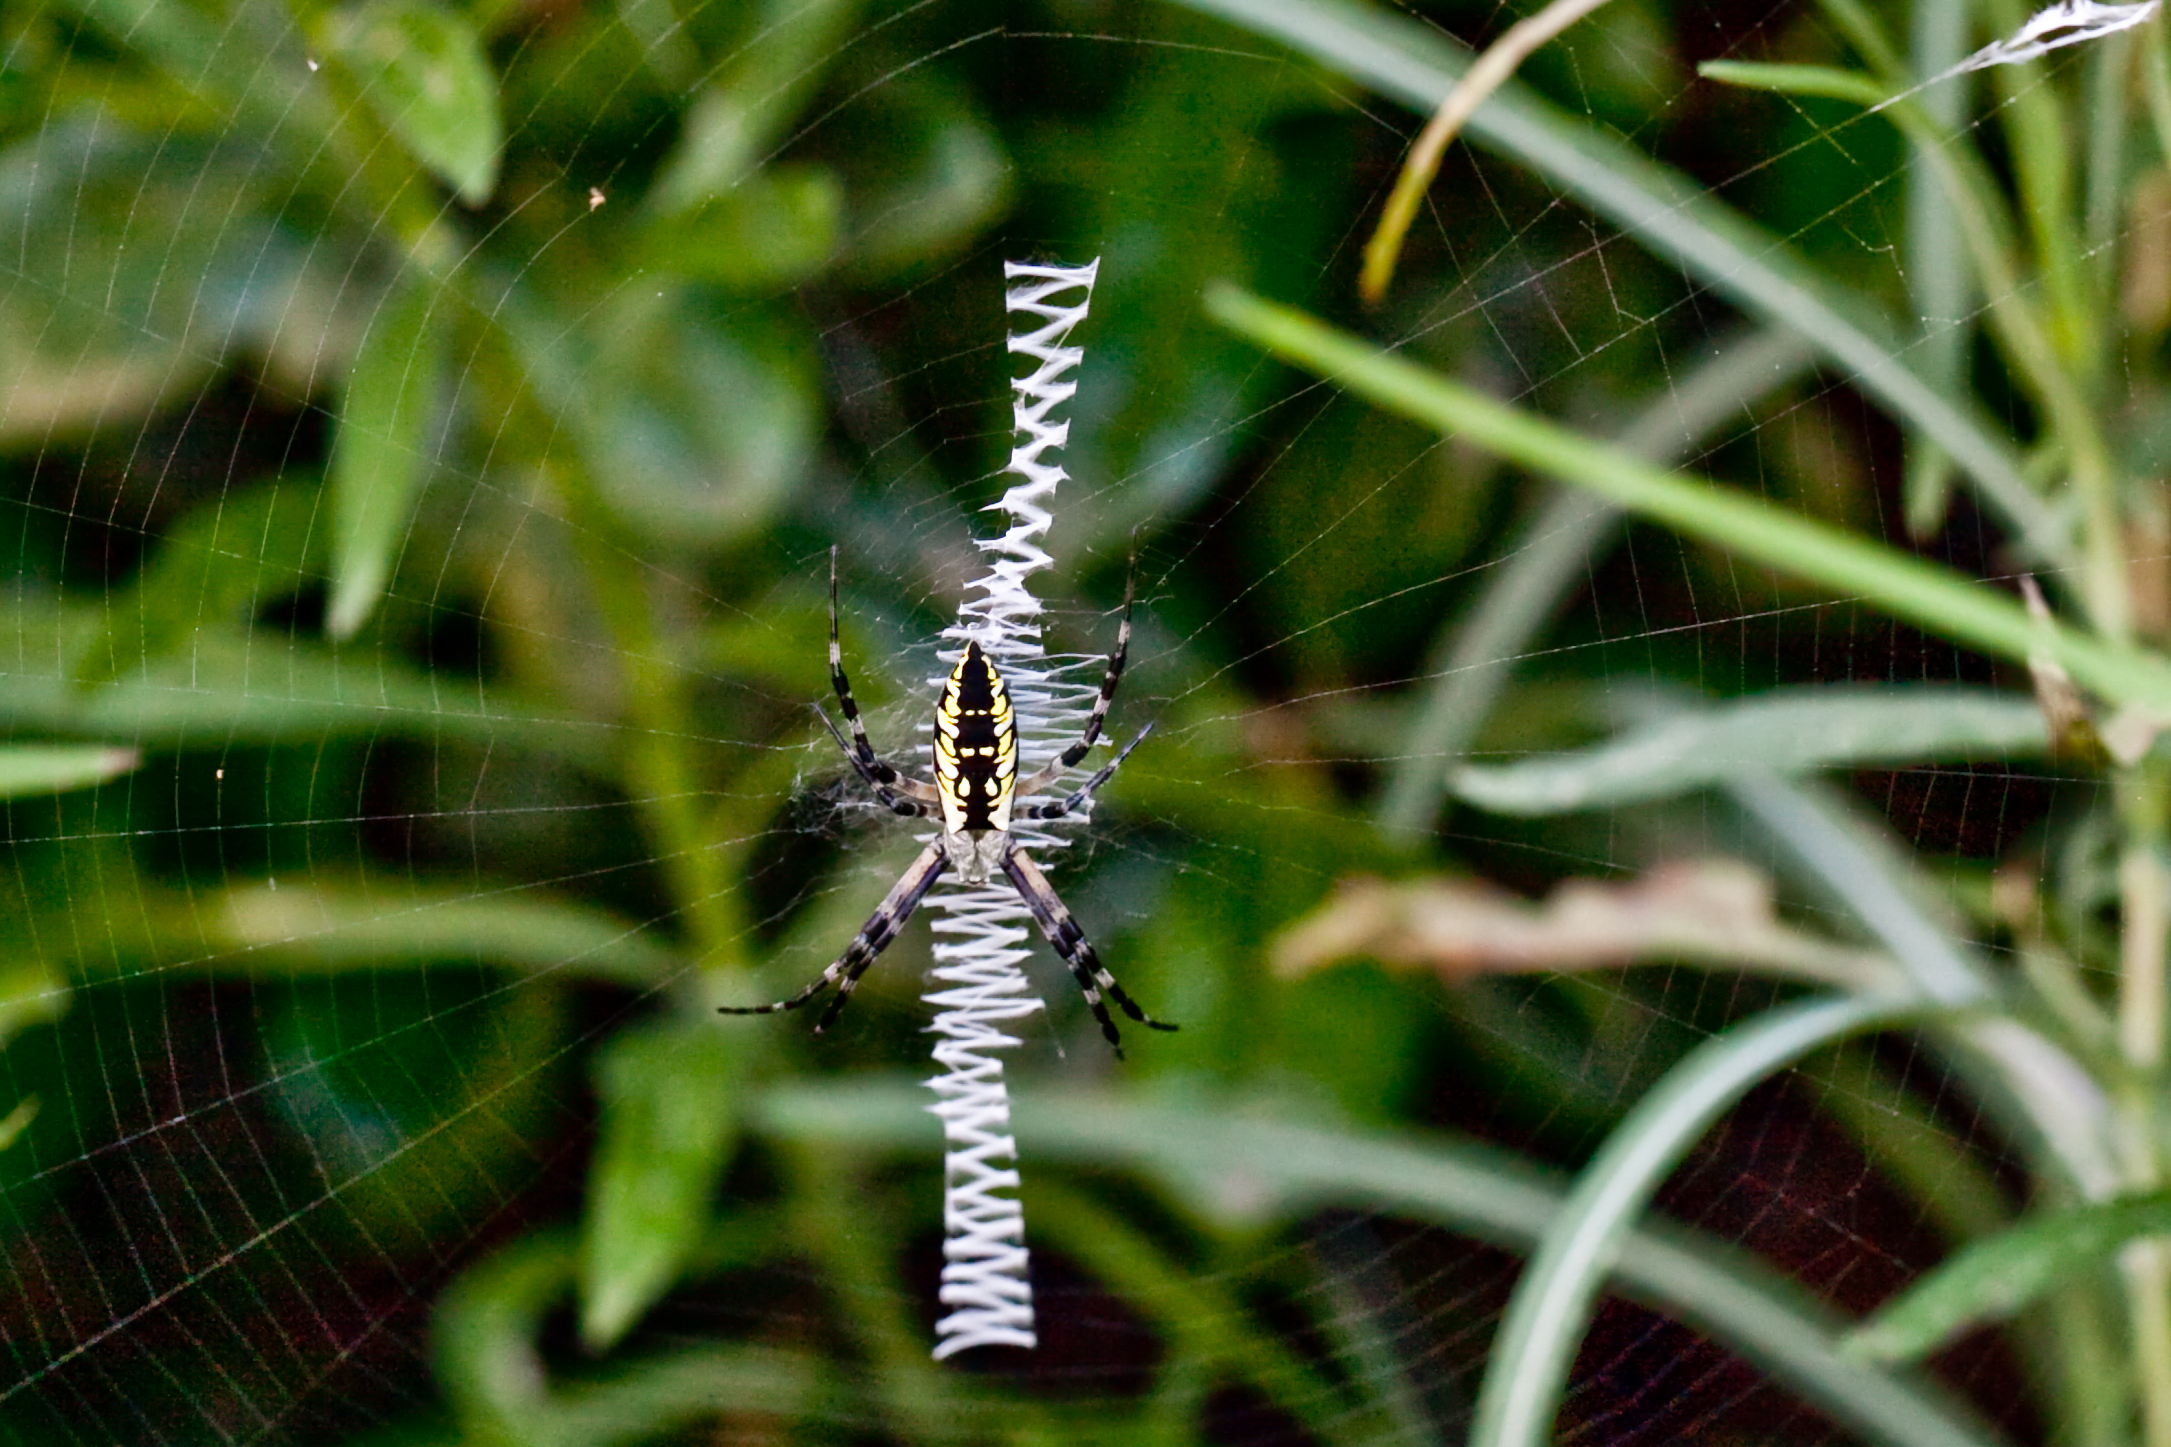 """Zigzag spider"" by Deisy Mendoza on  Wikipedia"